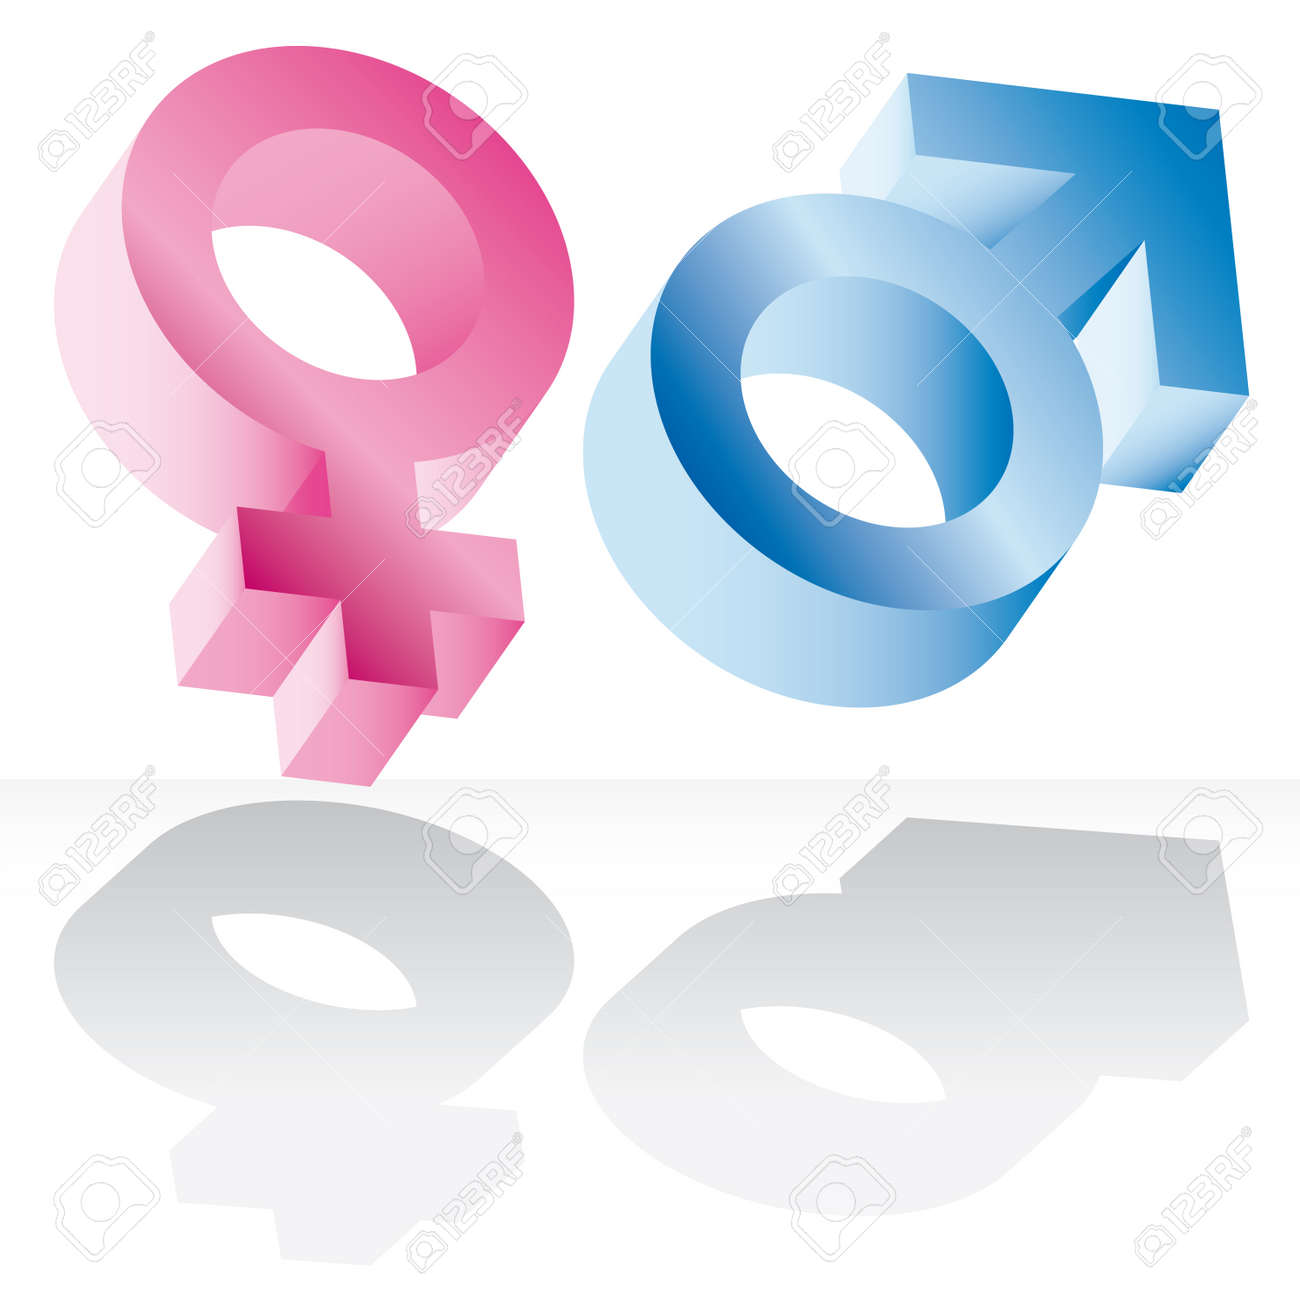 Male and female signs isolated on white background Standard-Bild - 6761800